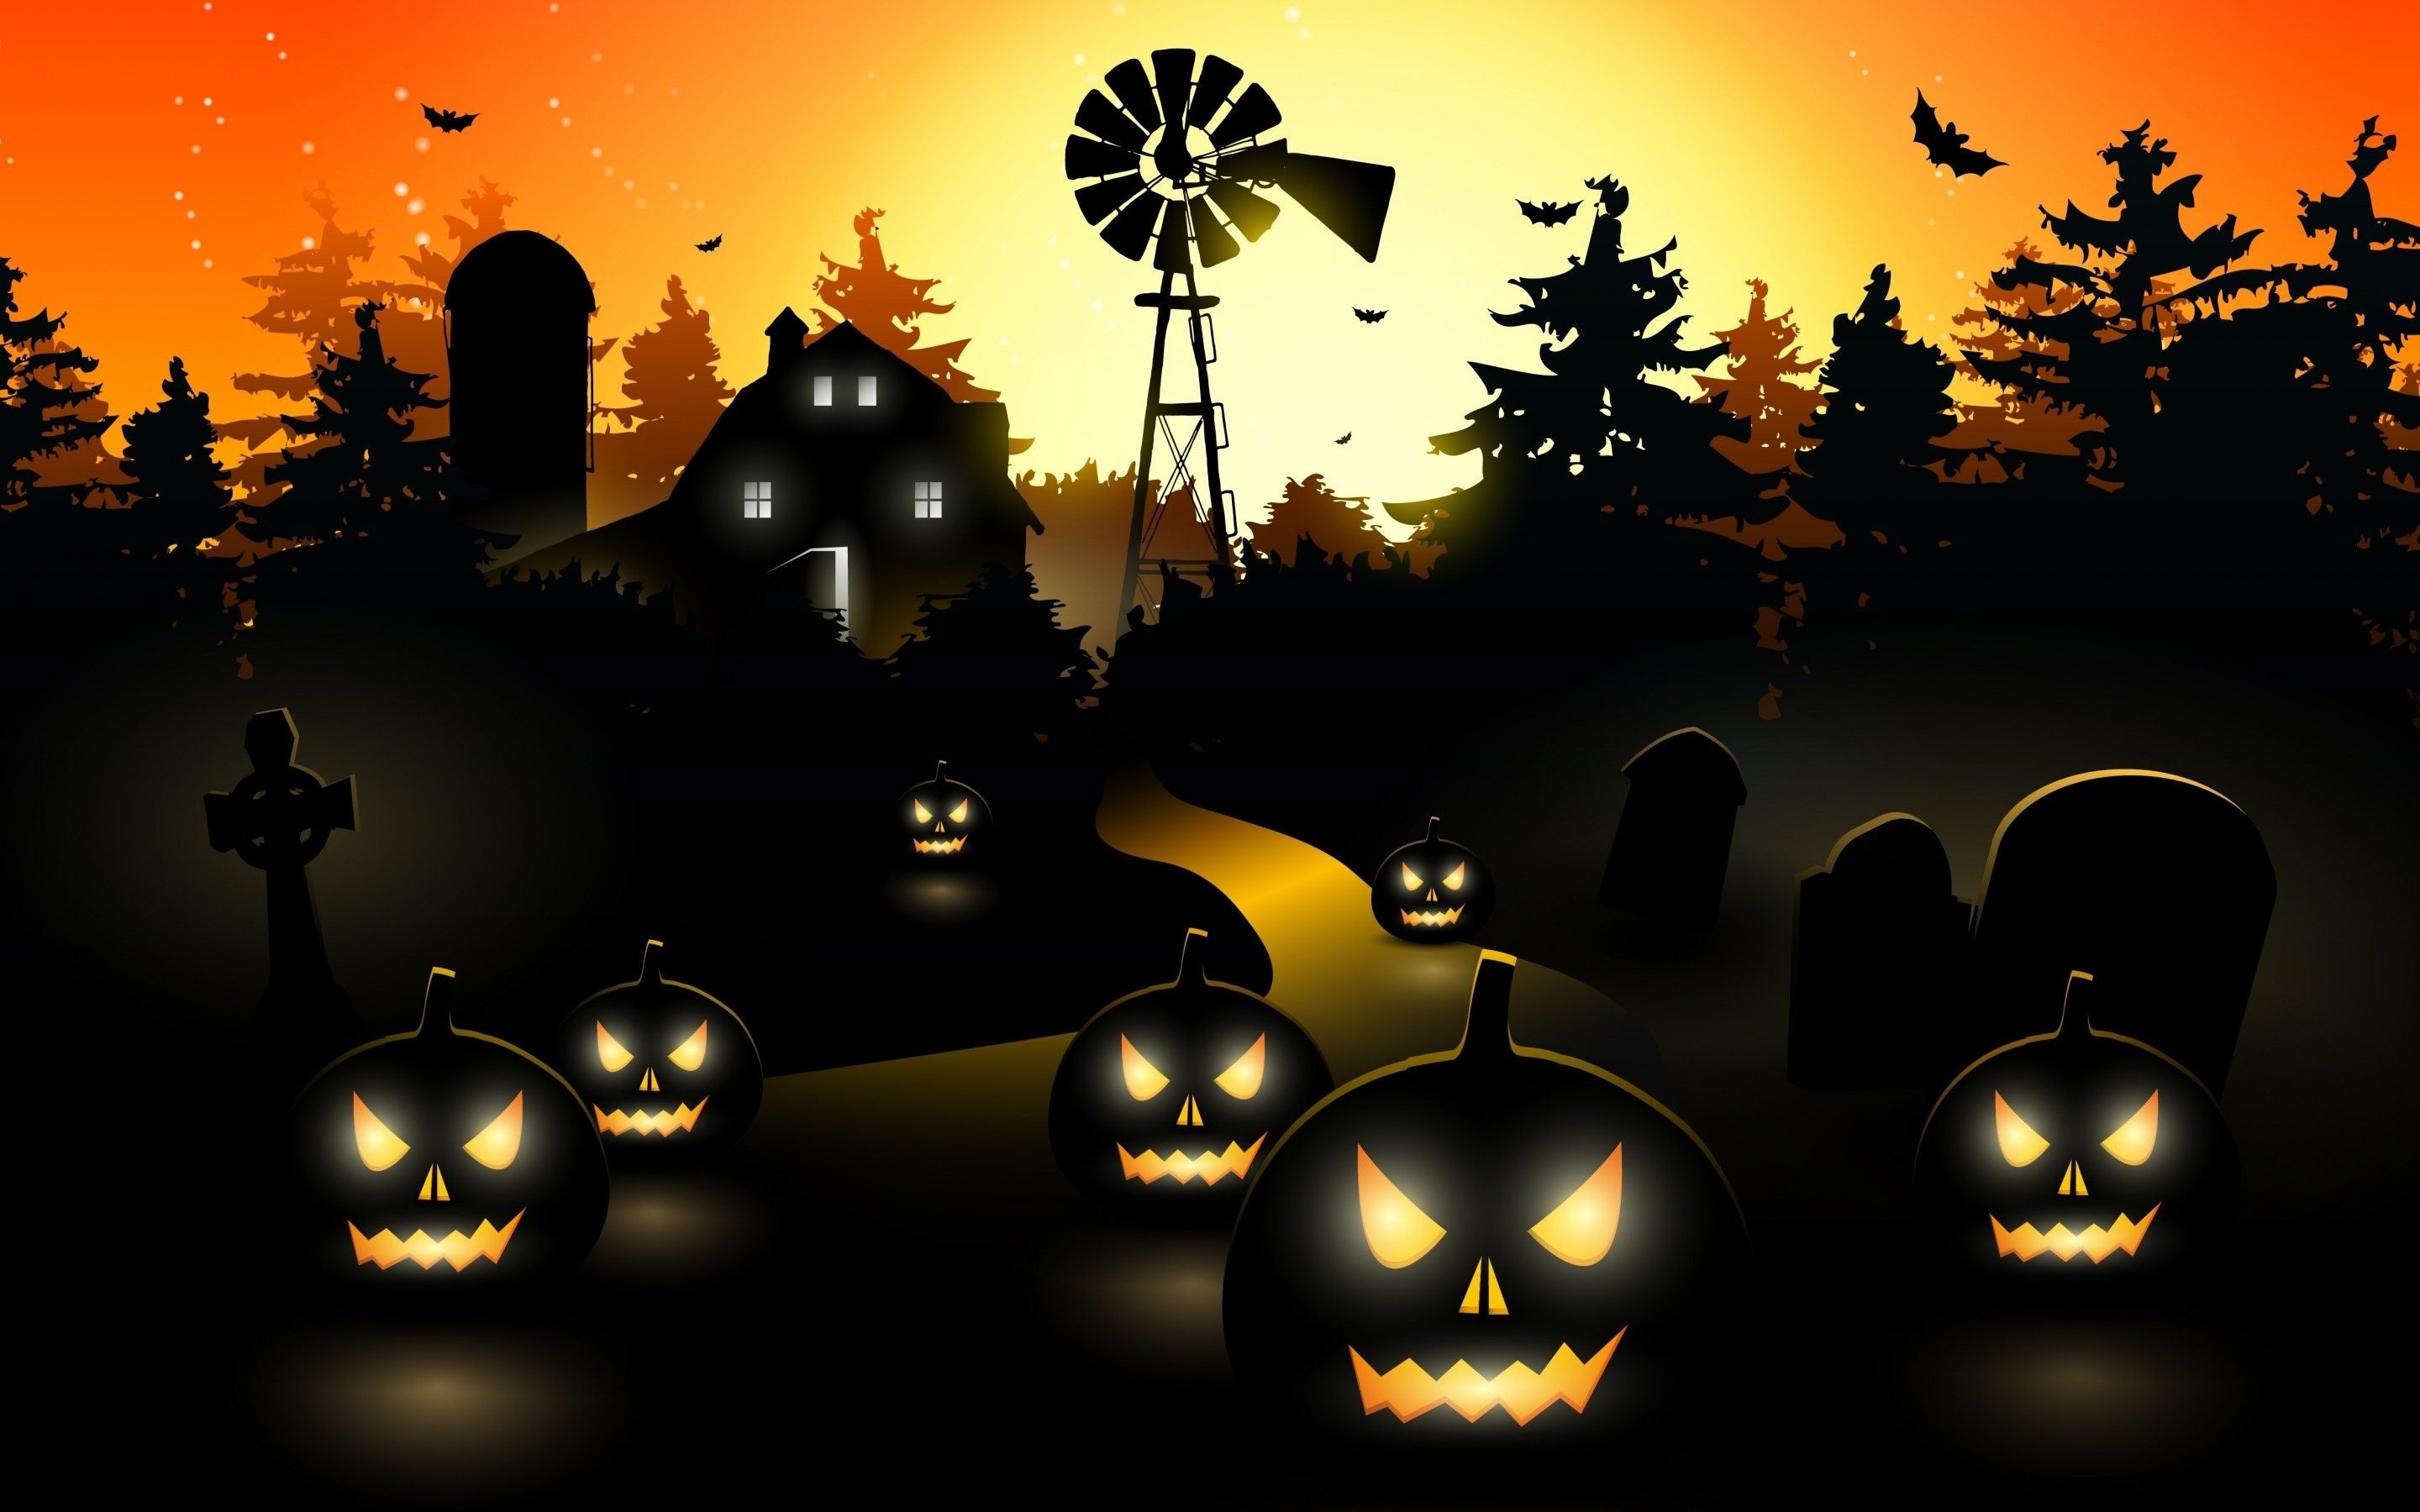 2880x1800 Pumpkin Halloween Desktop Wallpaper.